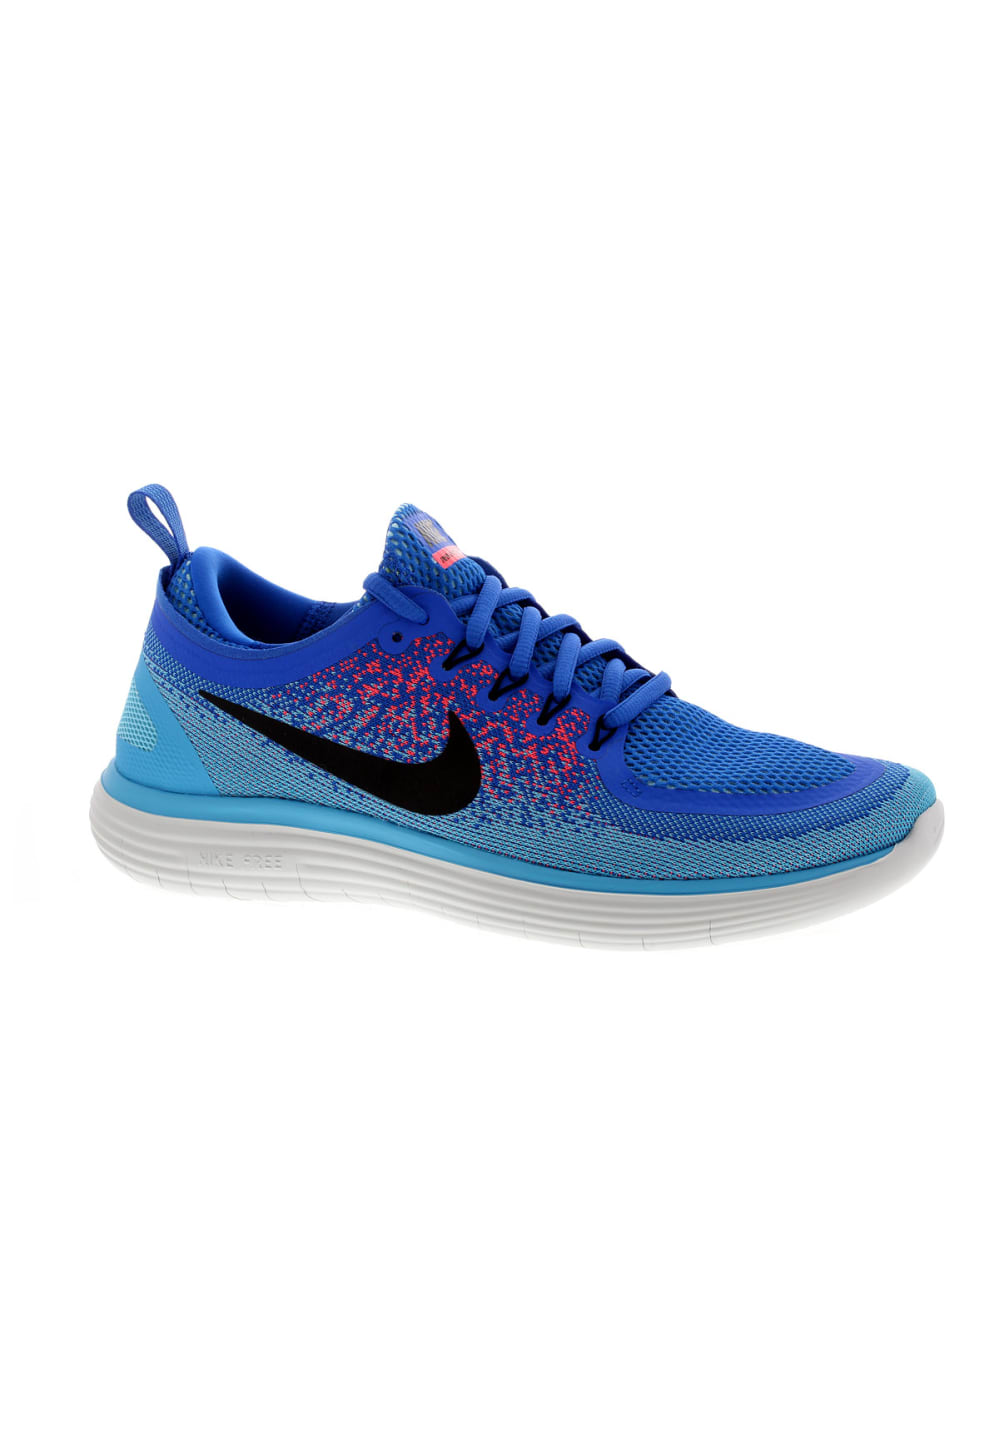 new products 08478 bd910 Nike Free RN Distance 2 - Running shoes for Men - Blue   21RUN